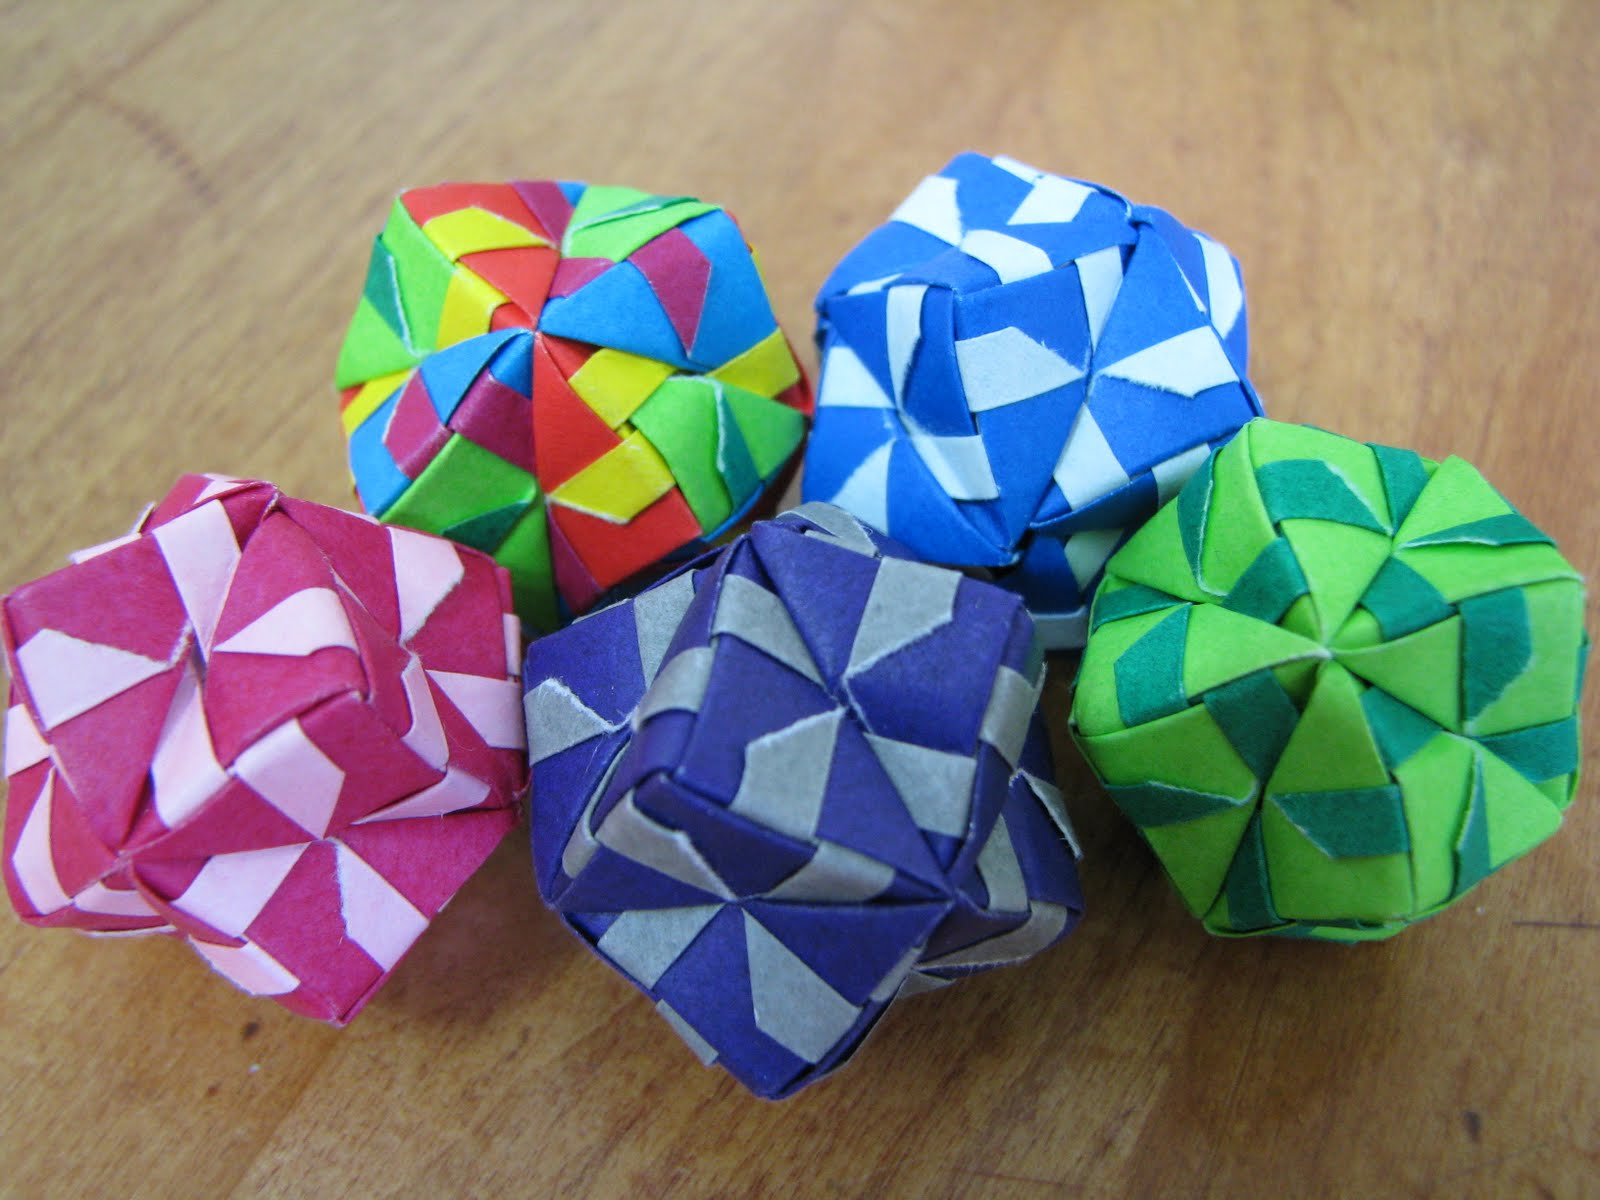 and Megumi Biddle Essential Origami 12unit sonobe ball misc colors Origami Paper Ball Instructions